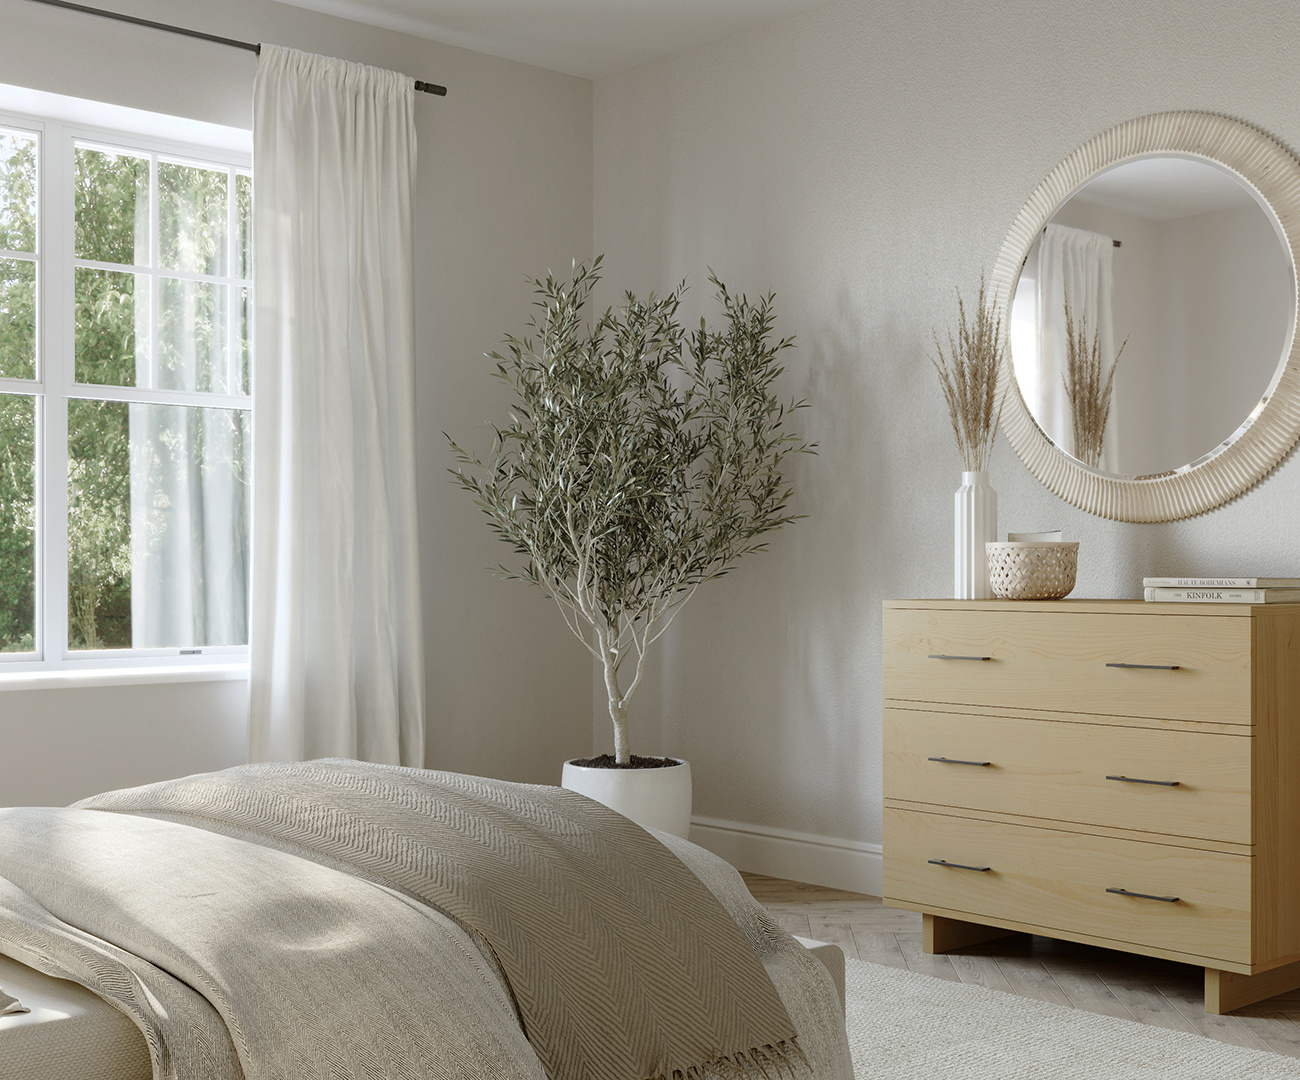 Contemporary bedroom with a modern maple solid wood Scandinavian dresser